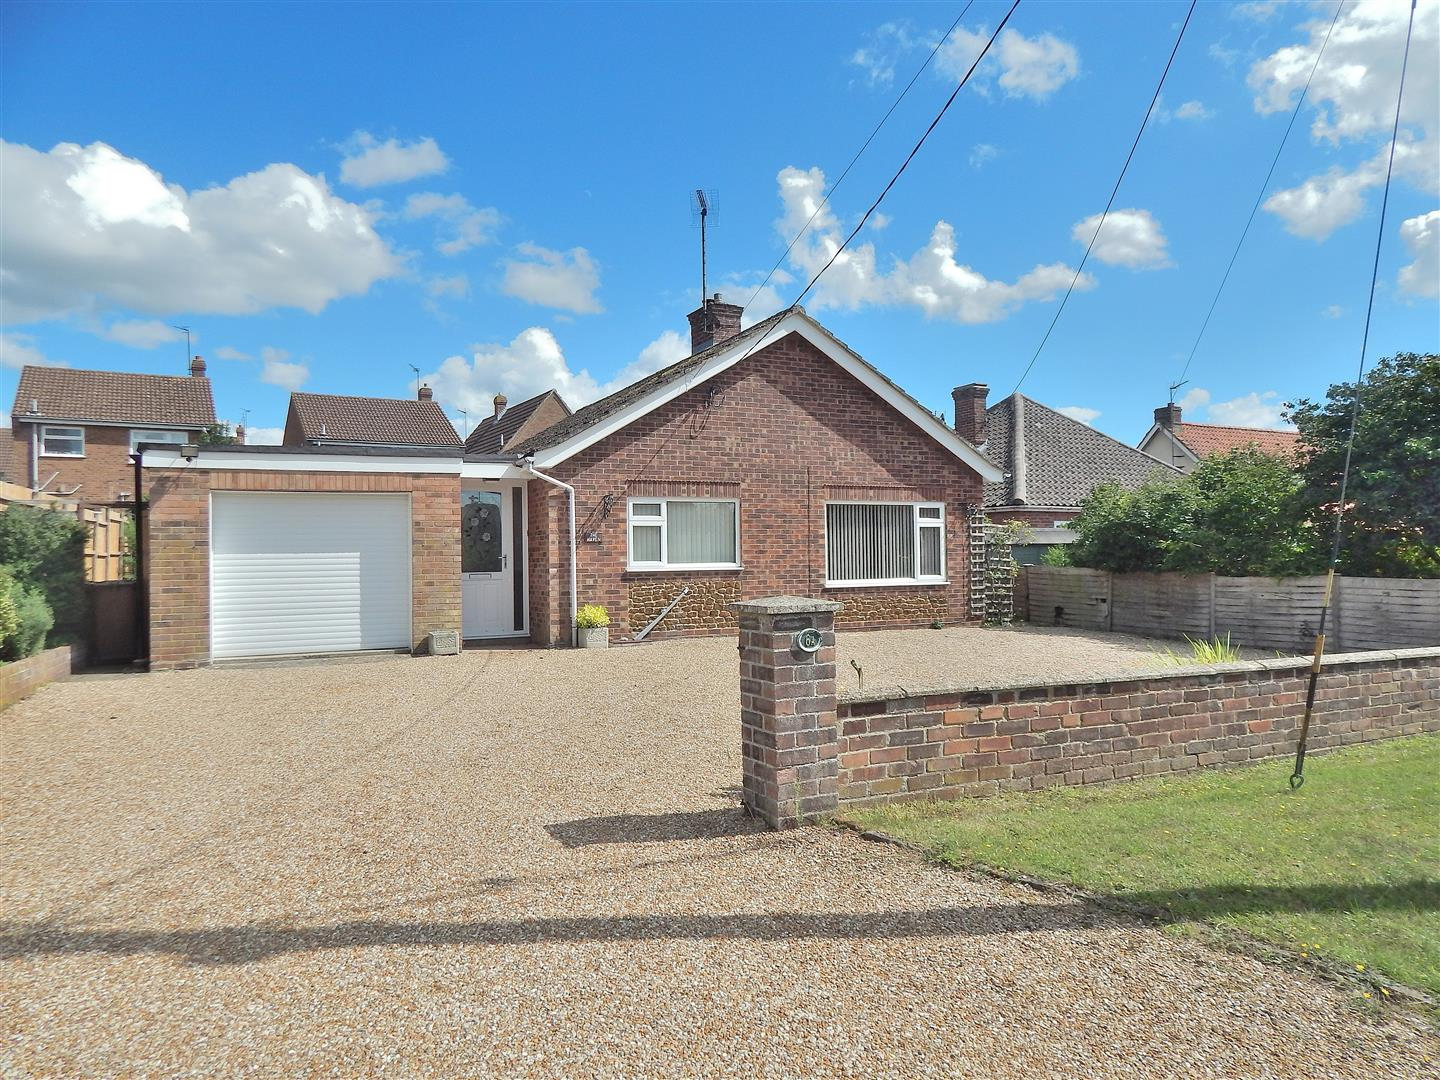 3 bed detached bungalow for sale in 6a Fern Hill, King's Lynn  - Property Image 1